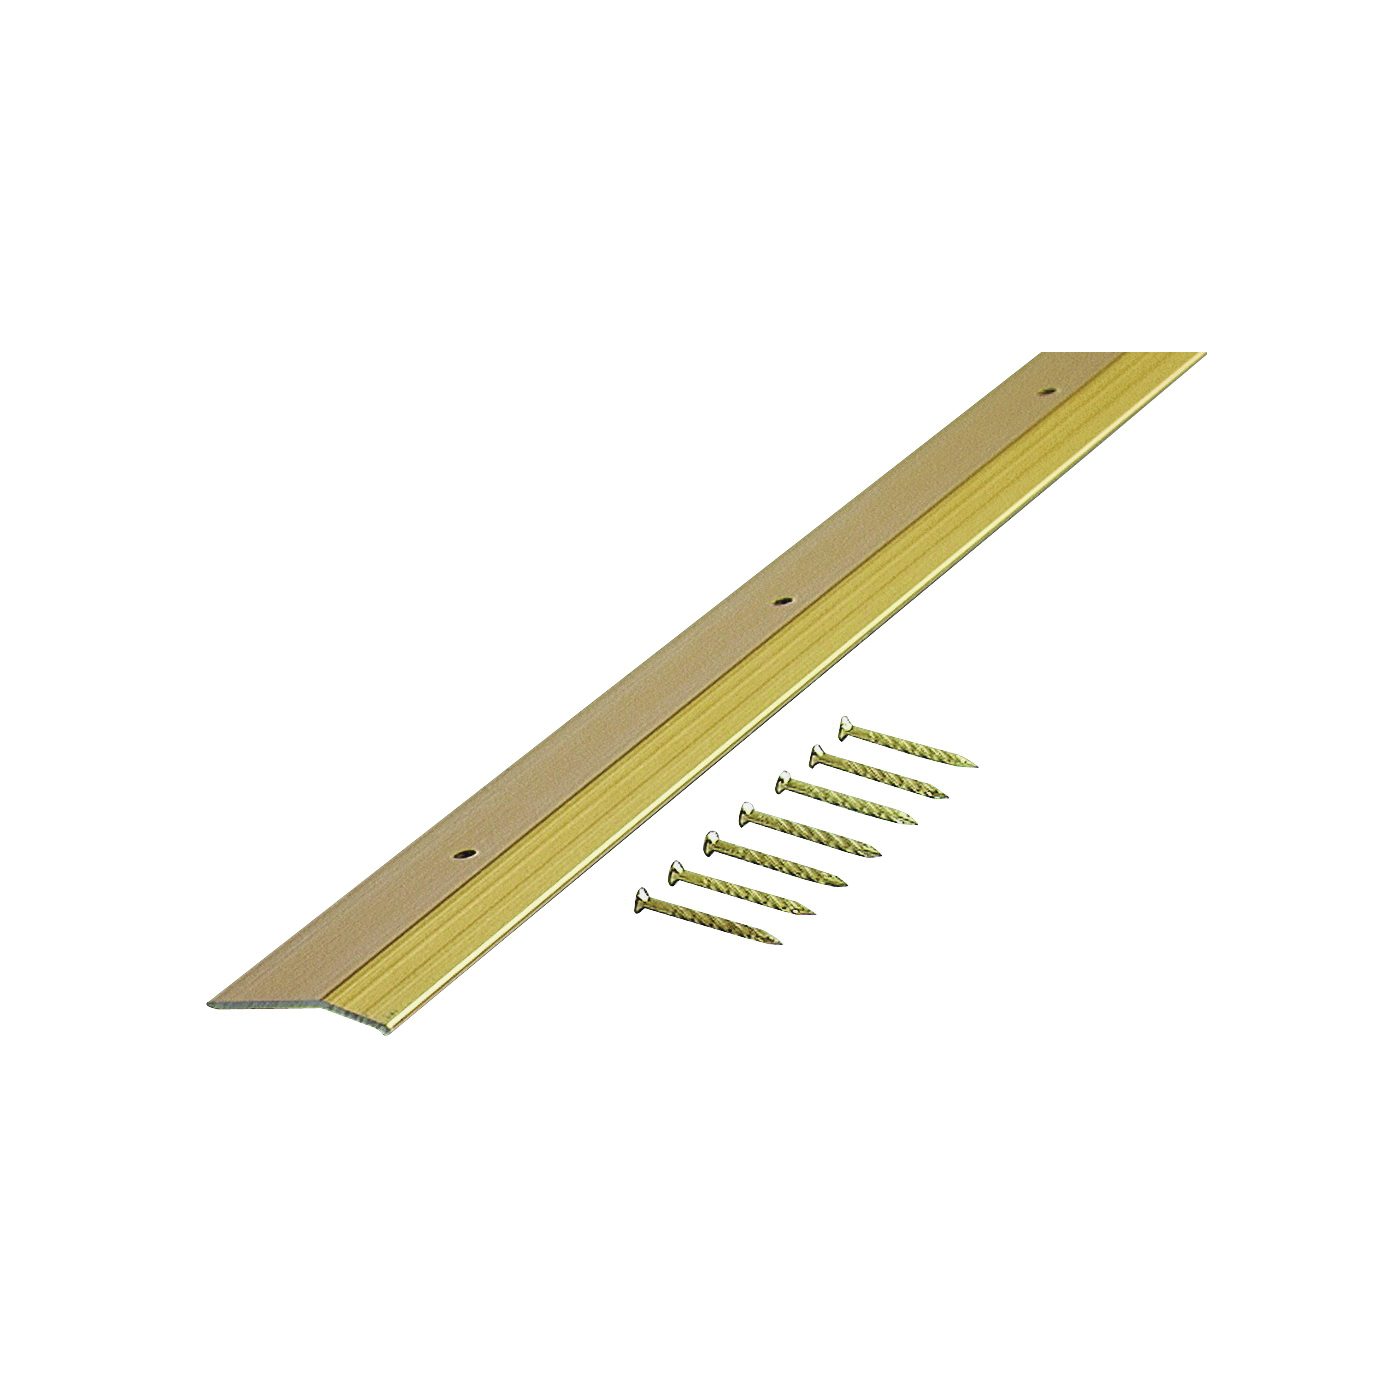 Picture of M-D 72074 Carpet Trim, 36 in L, 1.38 in W, Smooth Surface, Aluminum, Satin Brass